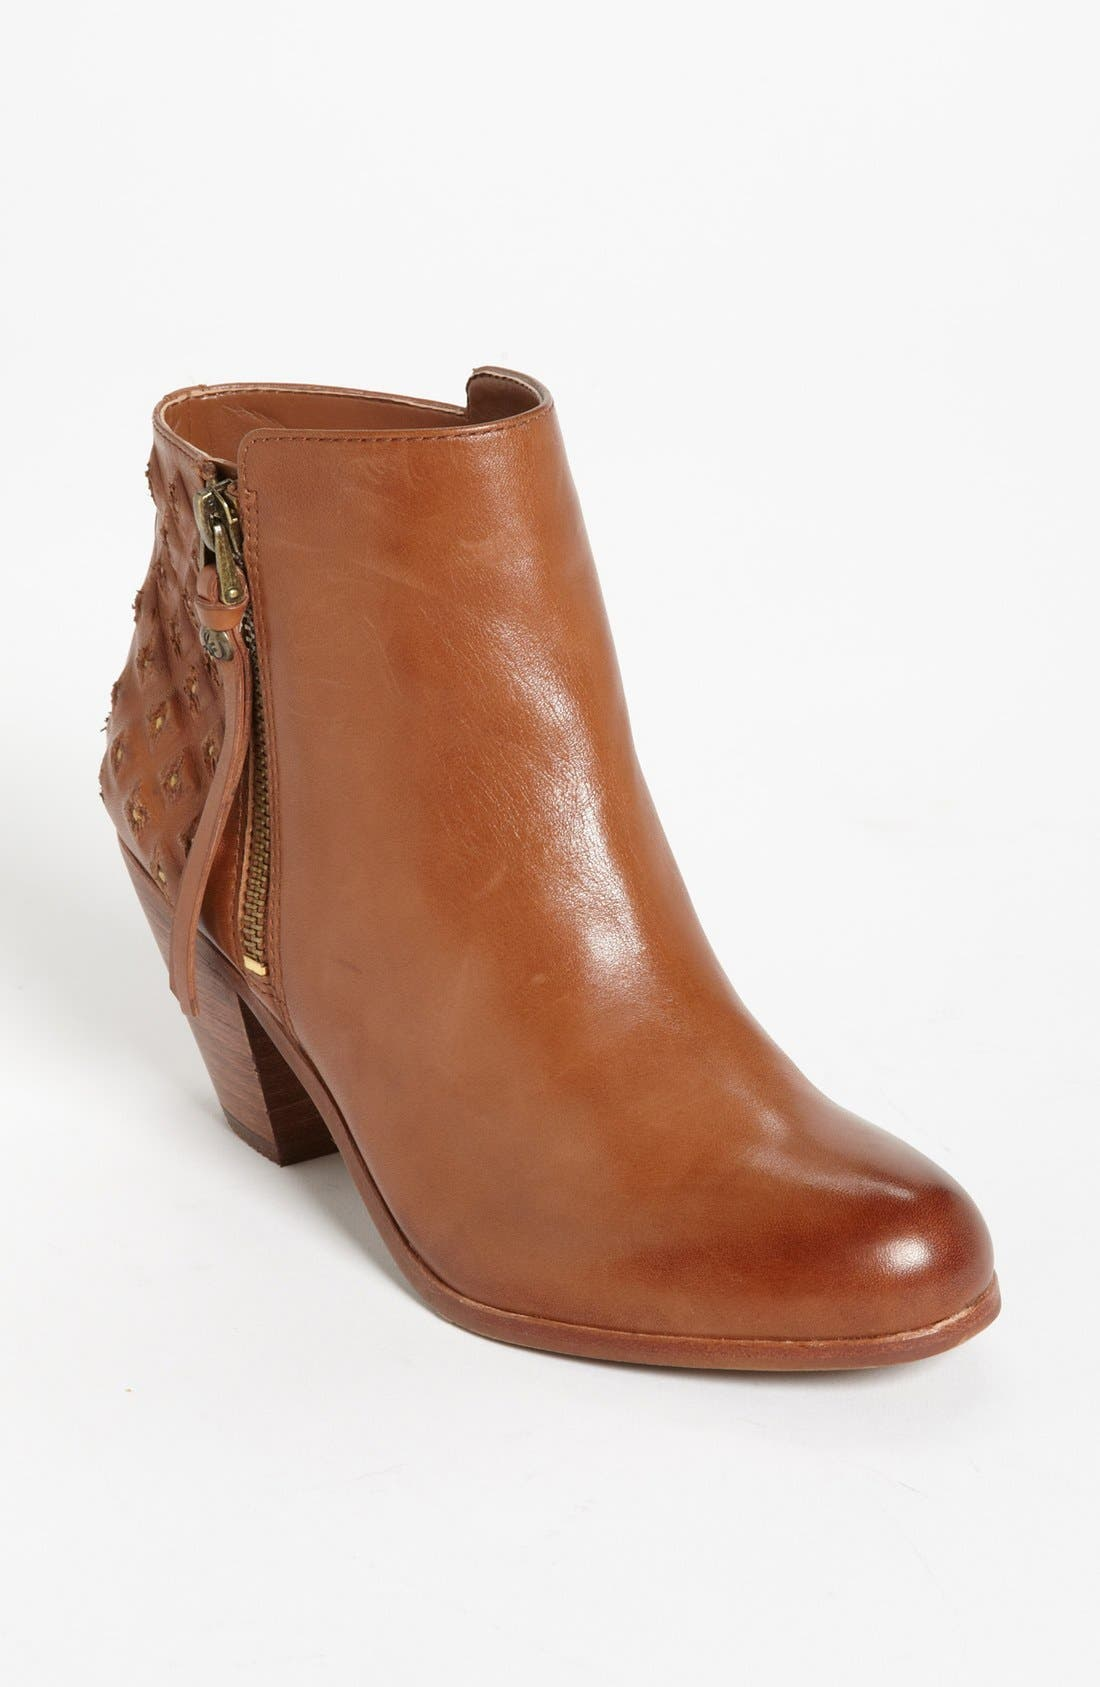 Alternate Image 1 Selected - Sam Edelman 'Lucille' Bootie